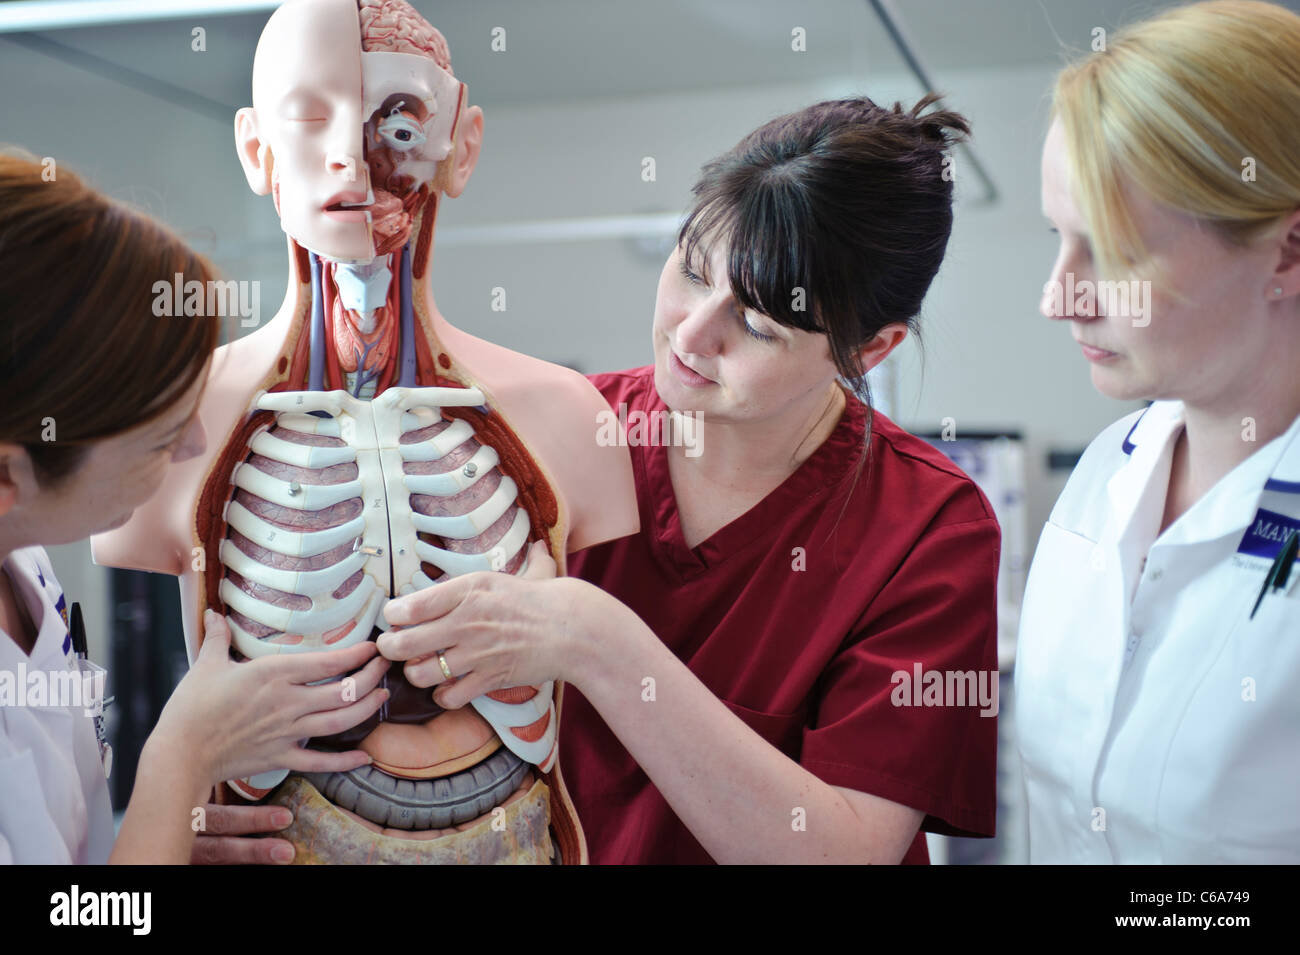 female white student nurses and teacher interacting with human anatomy anatomical model - Stock Image